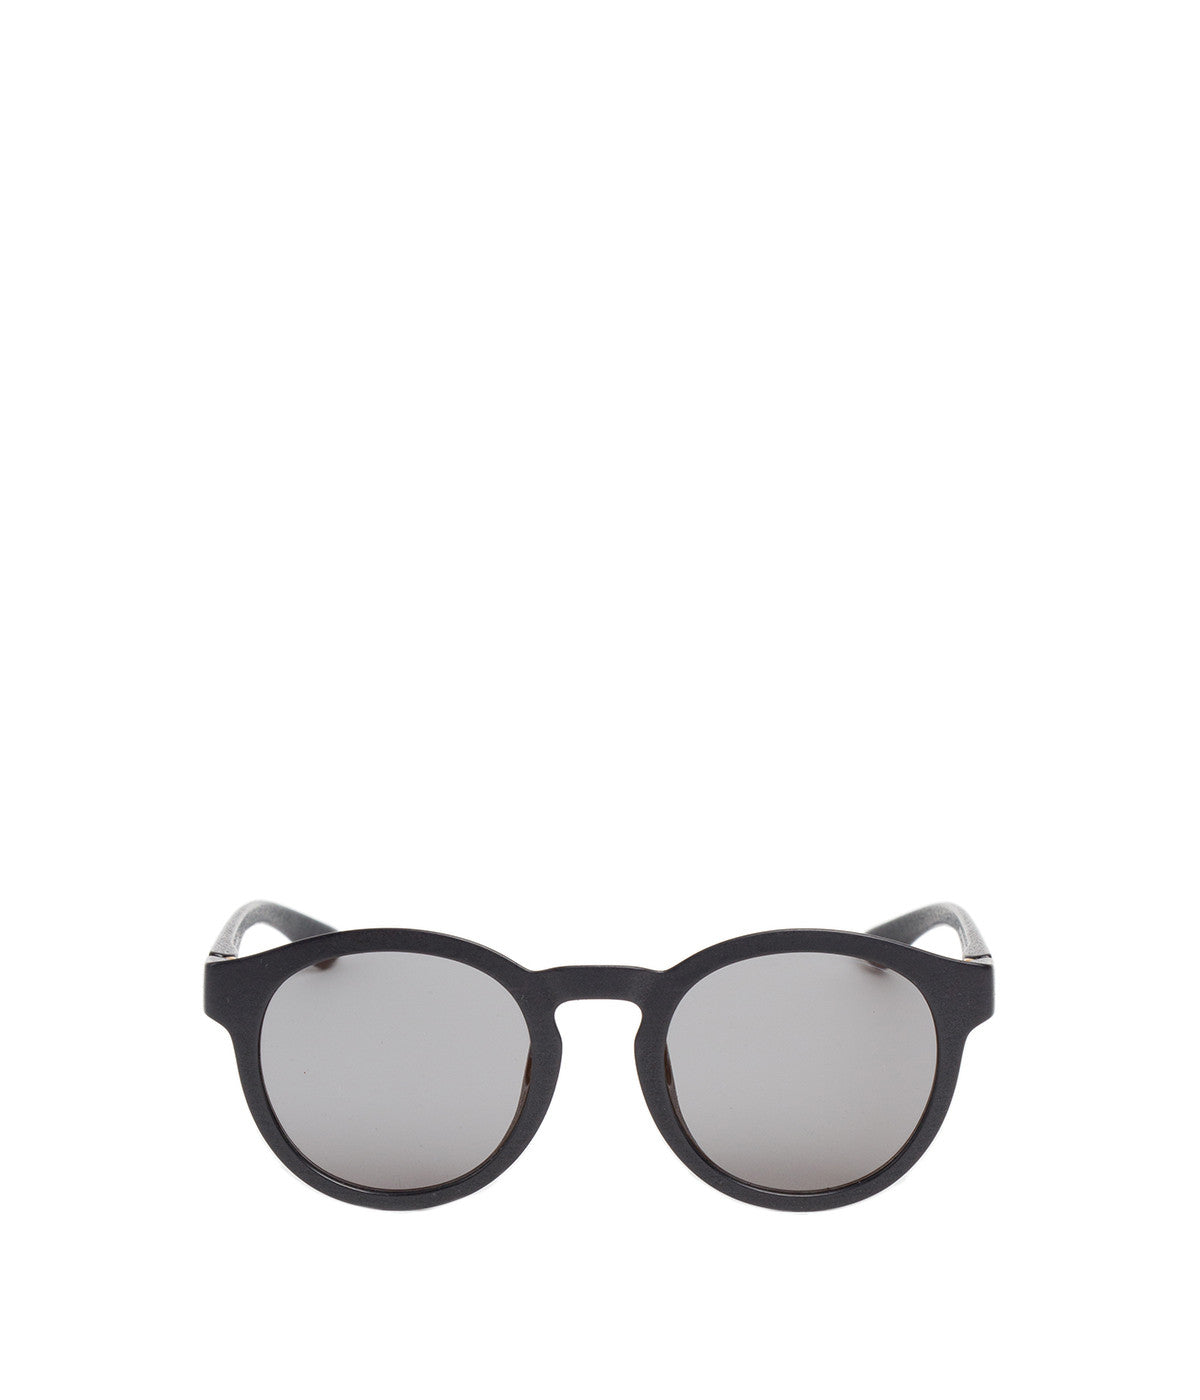 Black Mylon Giba Round Sunglasses